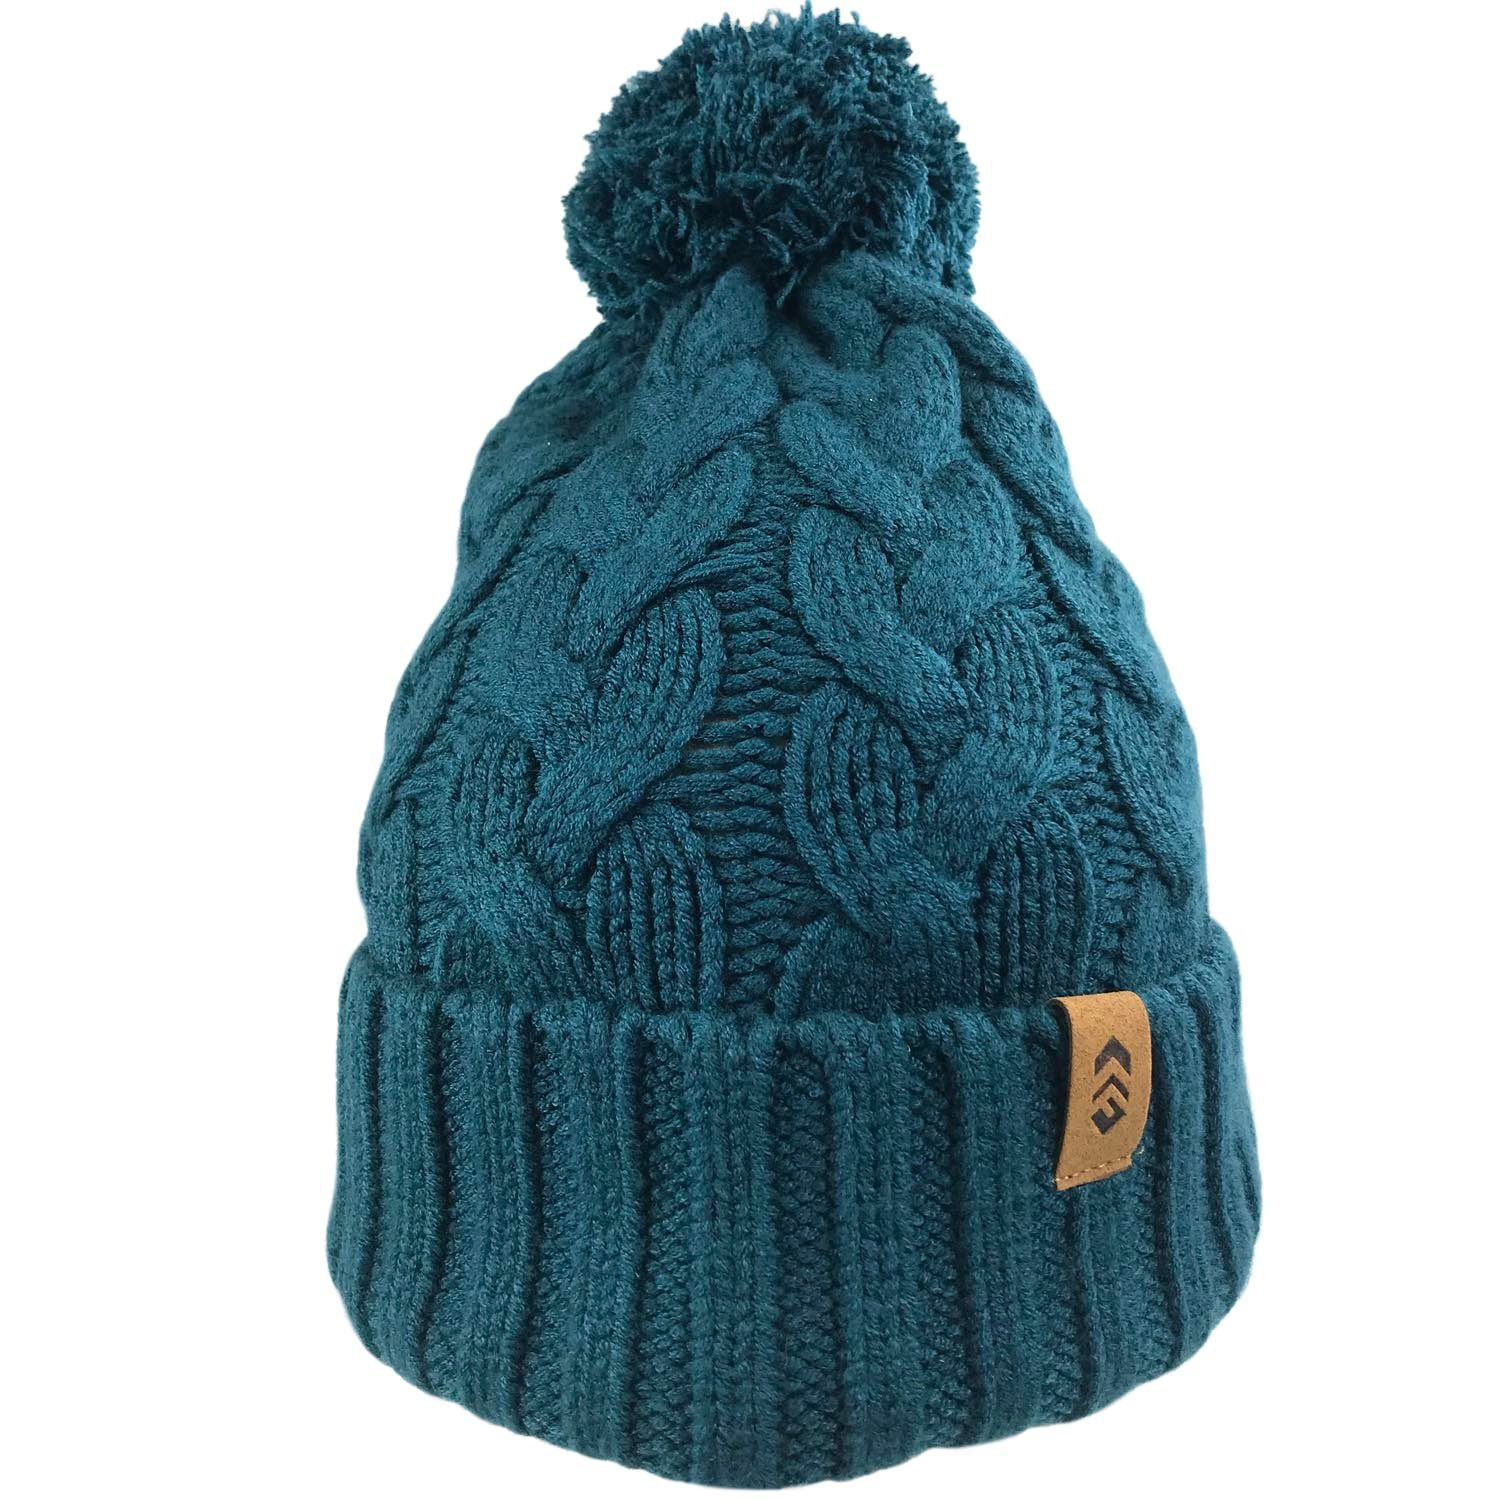 Women's Cable Knit Beanie with Yarn Pom